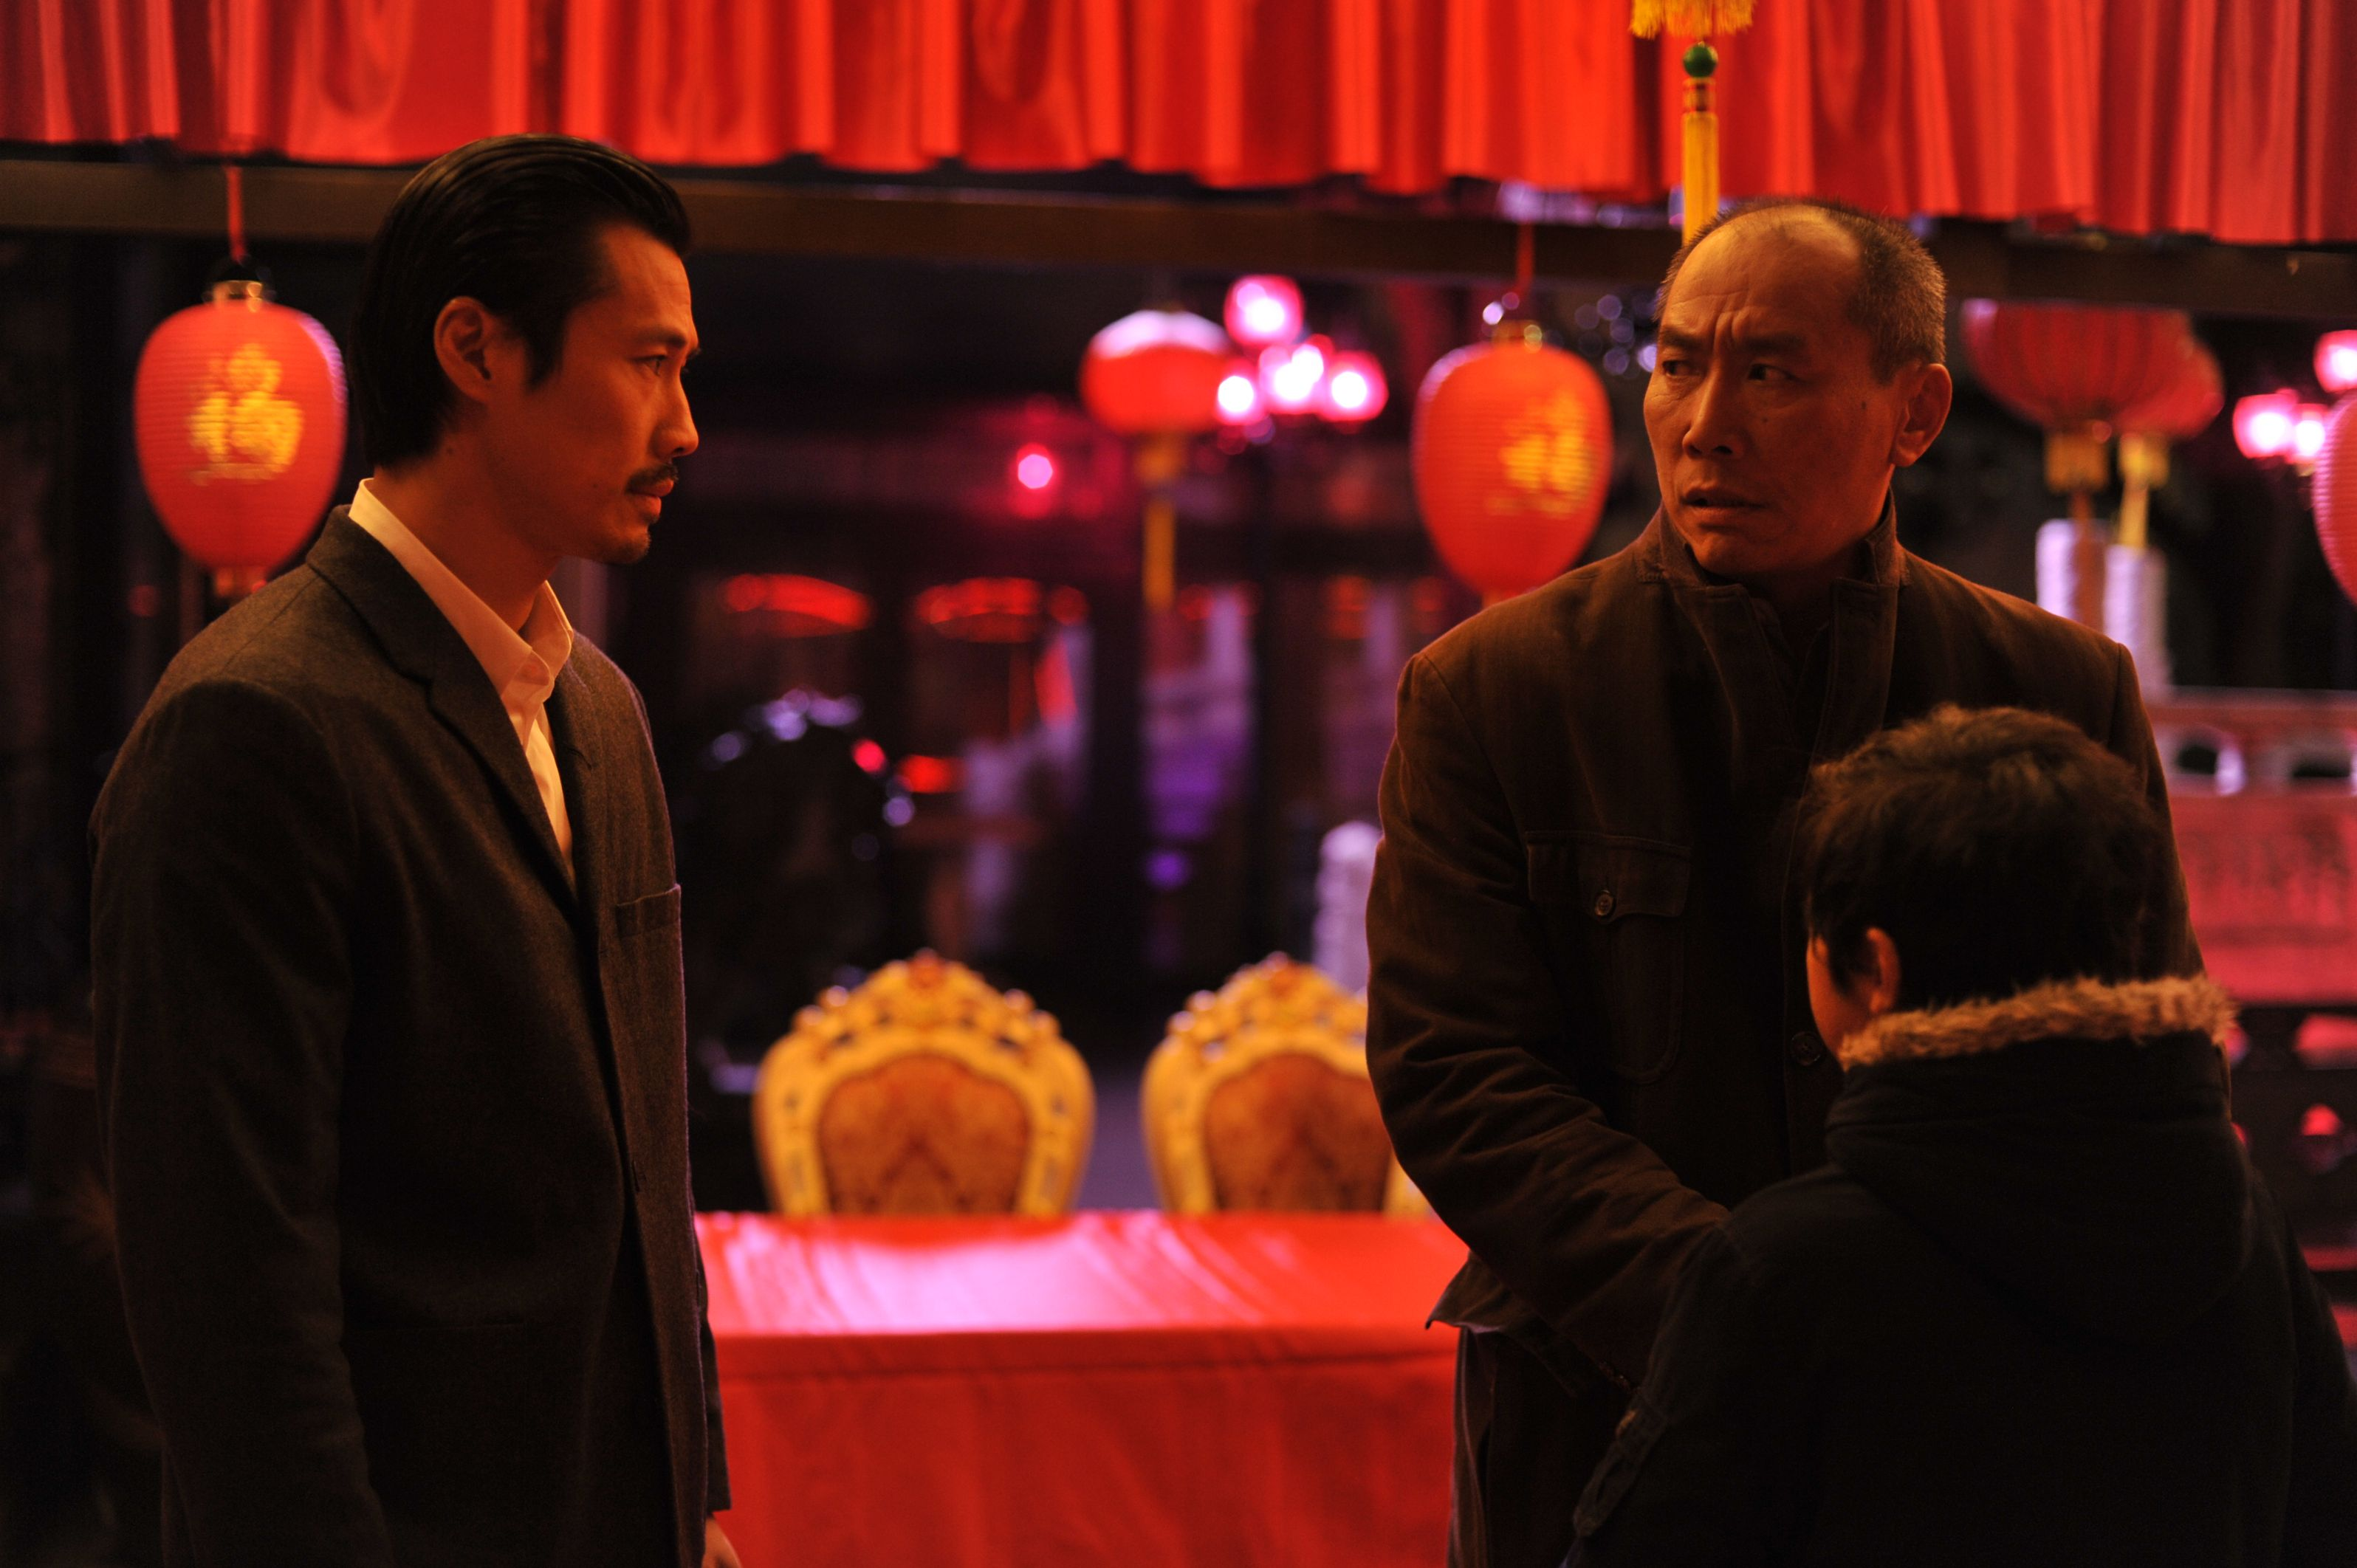 French Film Festival 19', 'Made In China': François trying to speak to his father his cousin's wedding.